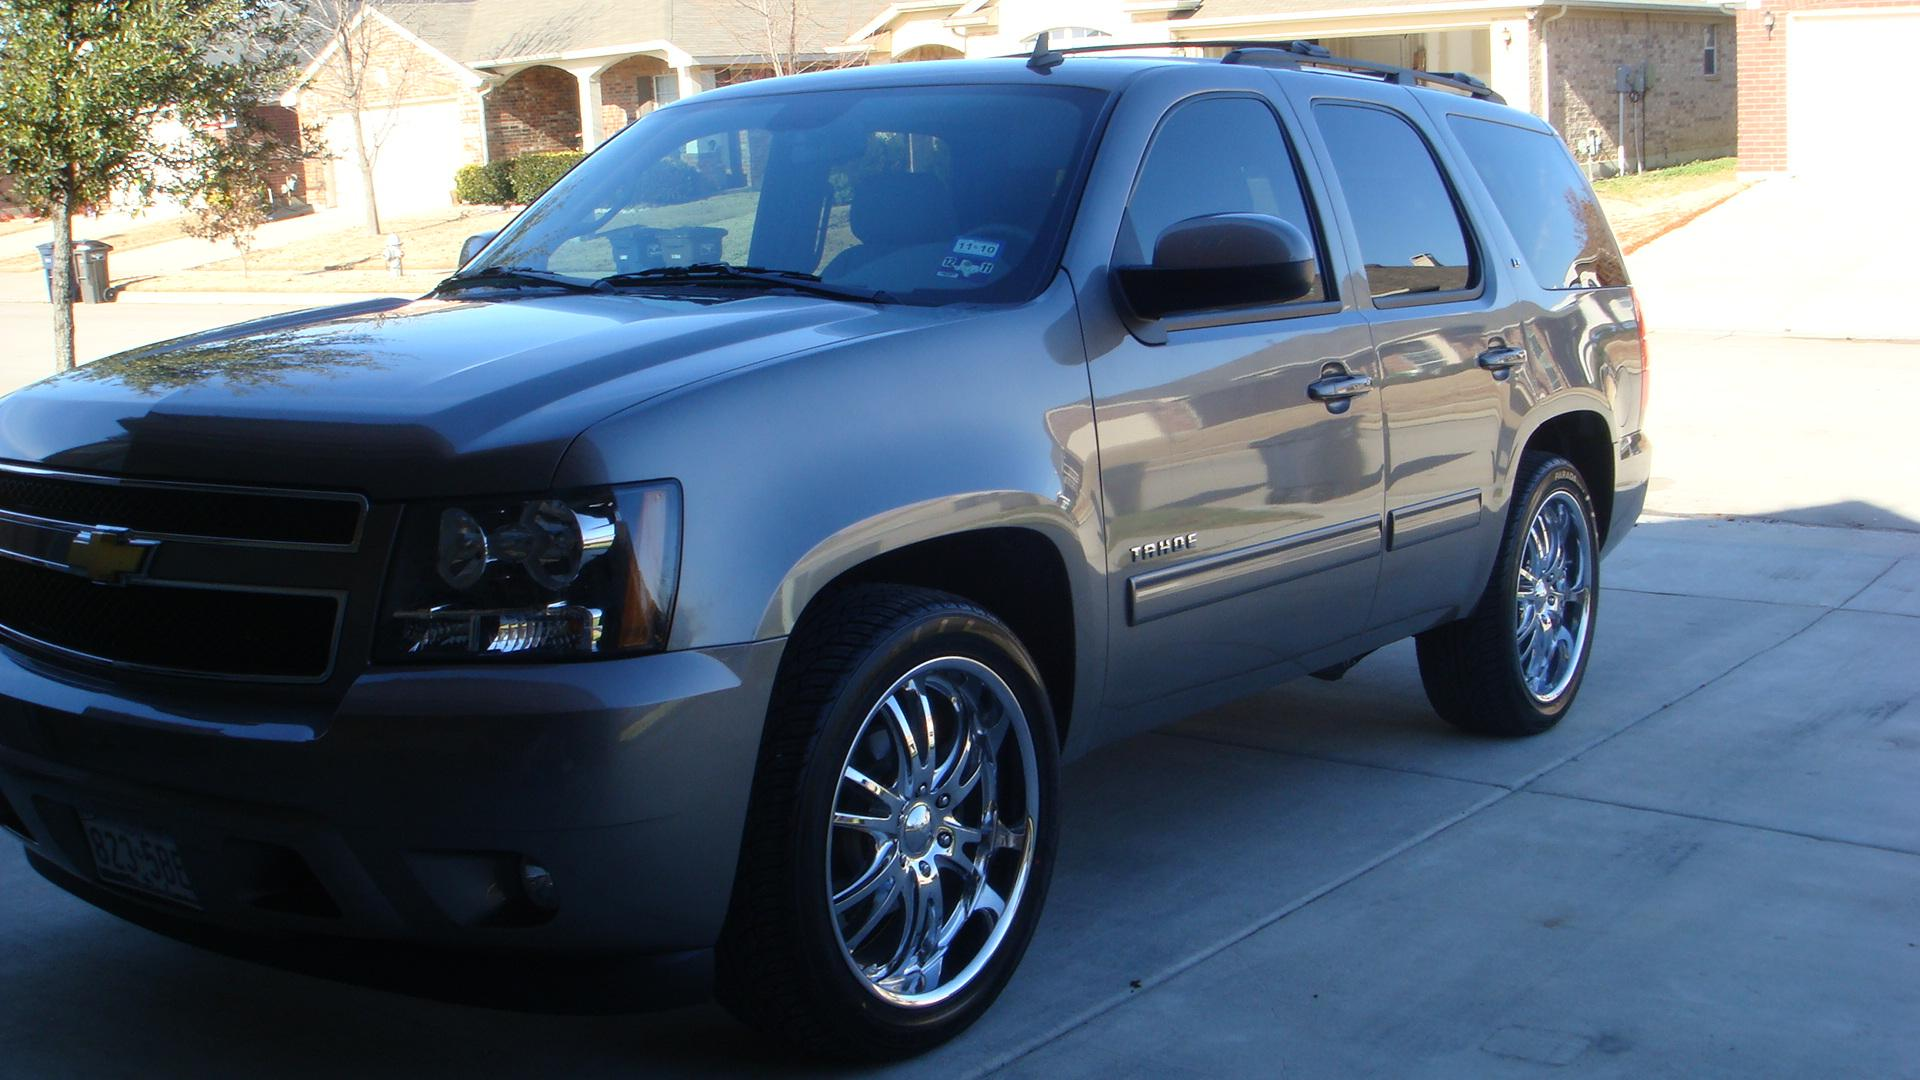 ryga 2009 chevrolet tahoe specs photos modification info at cardomain. Black Bedroom Furniture Sets. Home Design Ideas